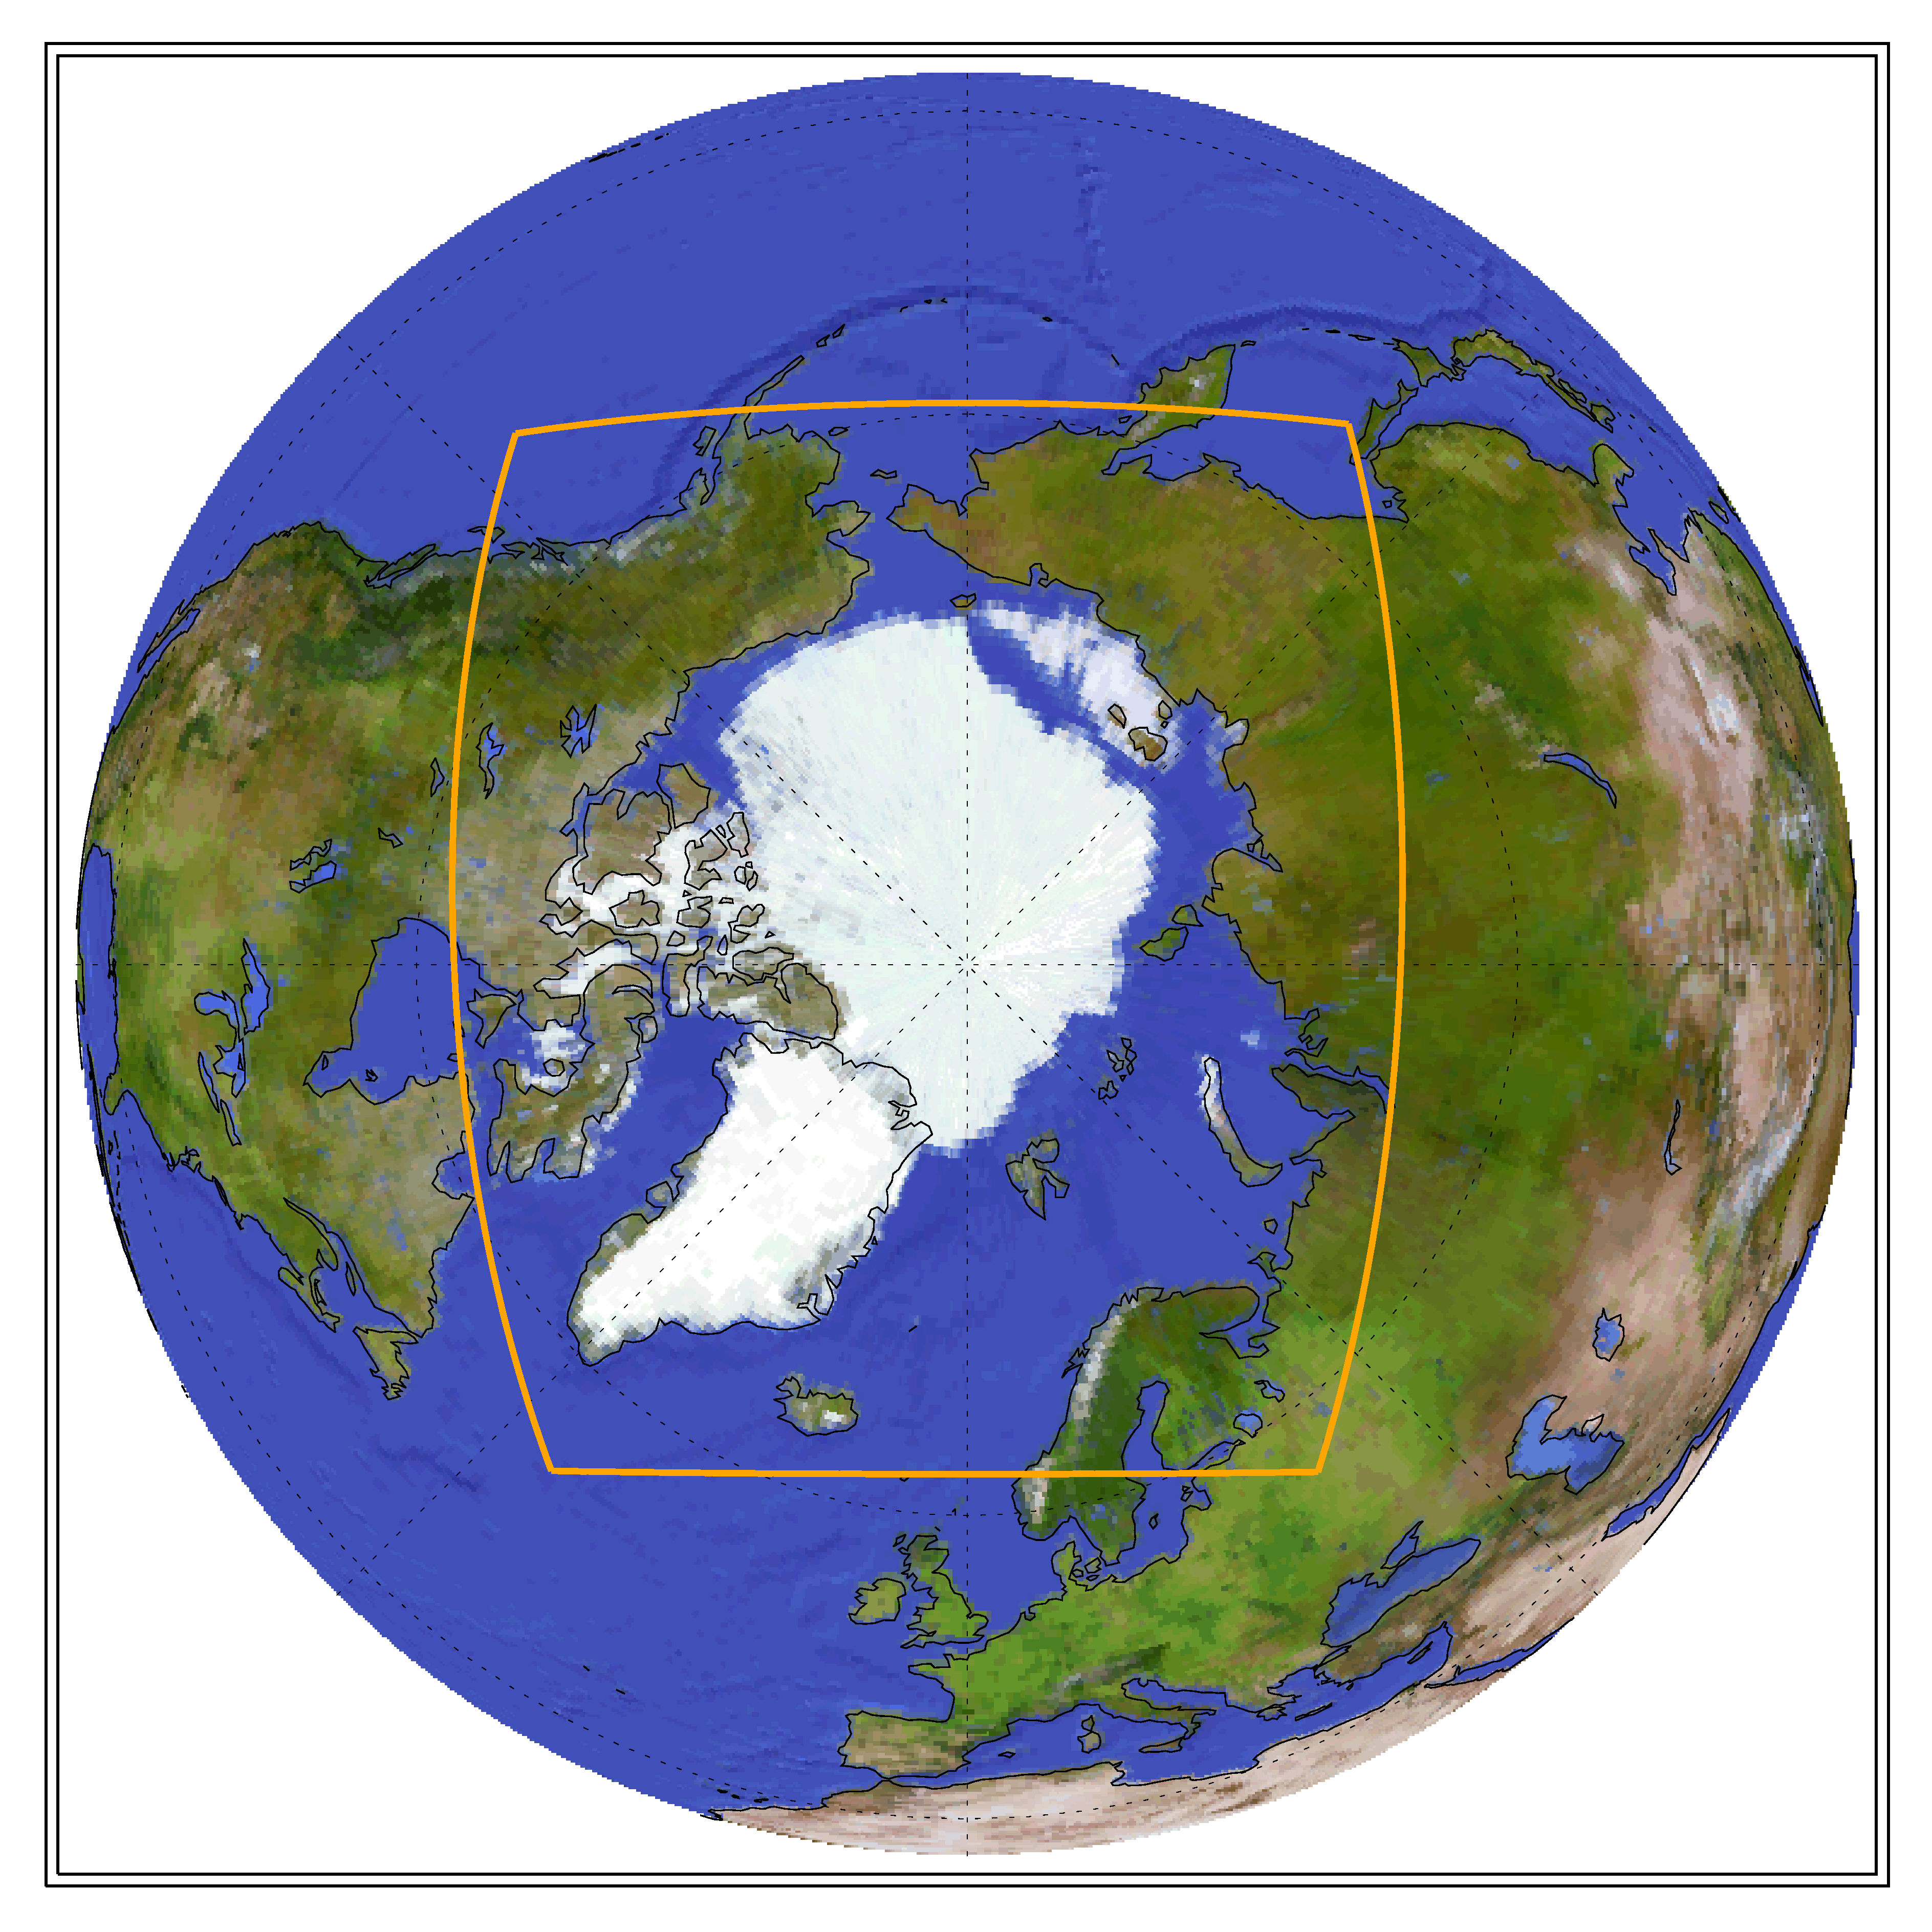 Globe showing the CORDEX domain of Artic